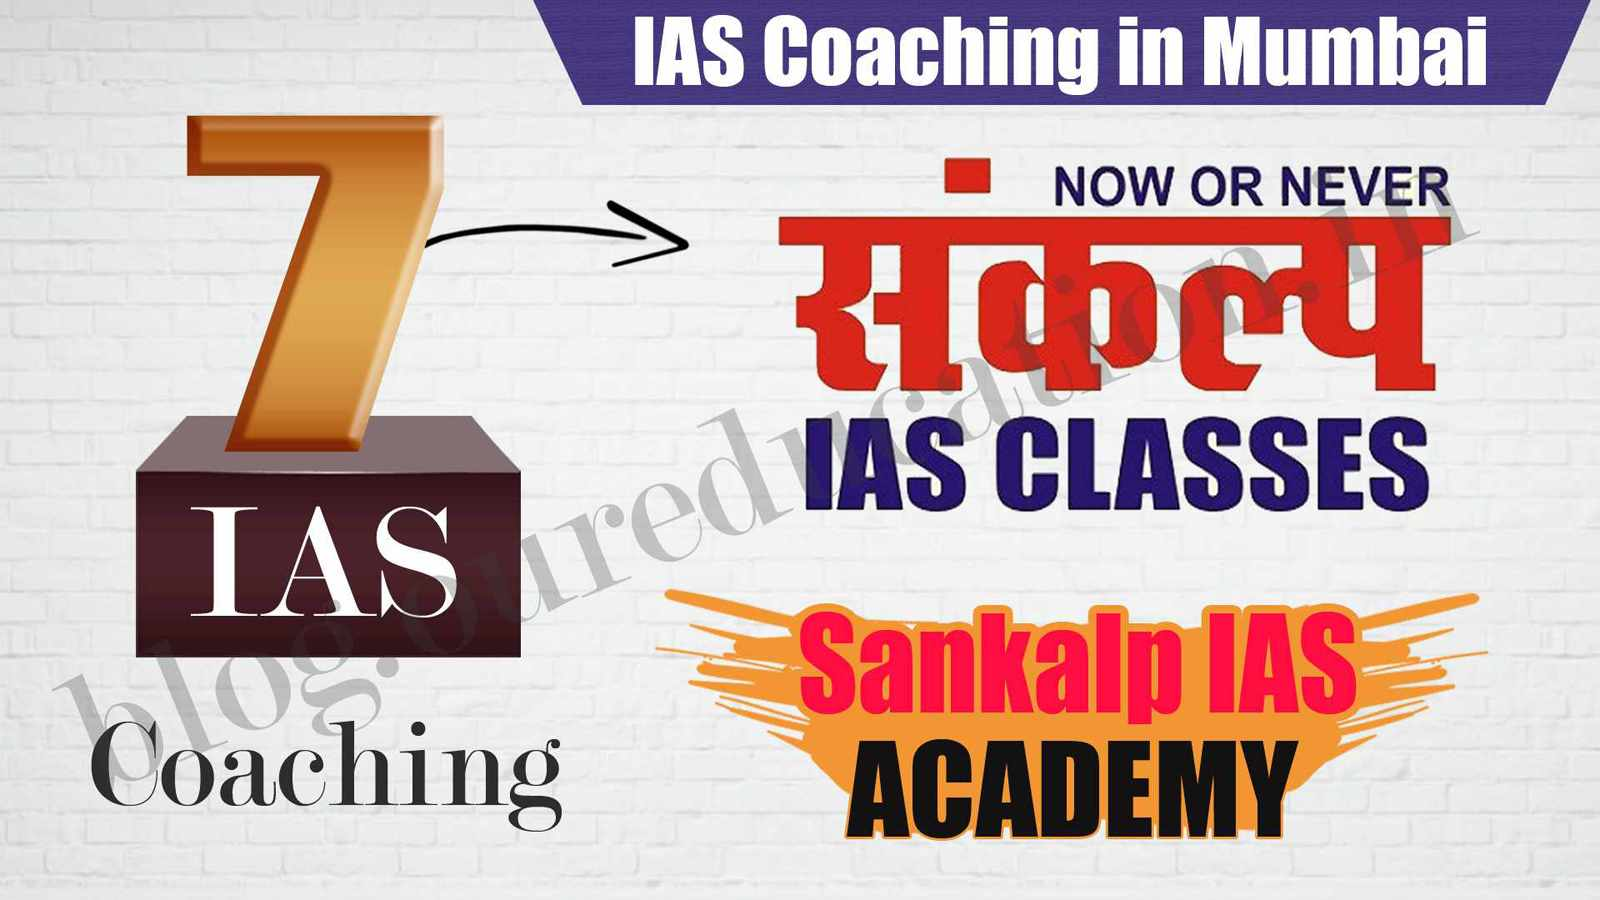 Top 10 IAS Coaching Institutes in Mumbai - UPSC Toppers Strategy